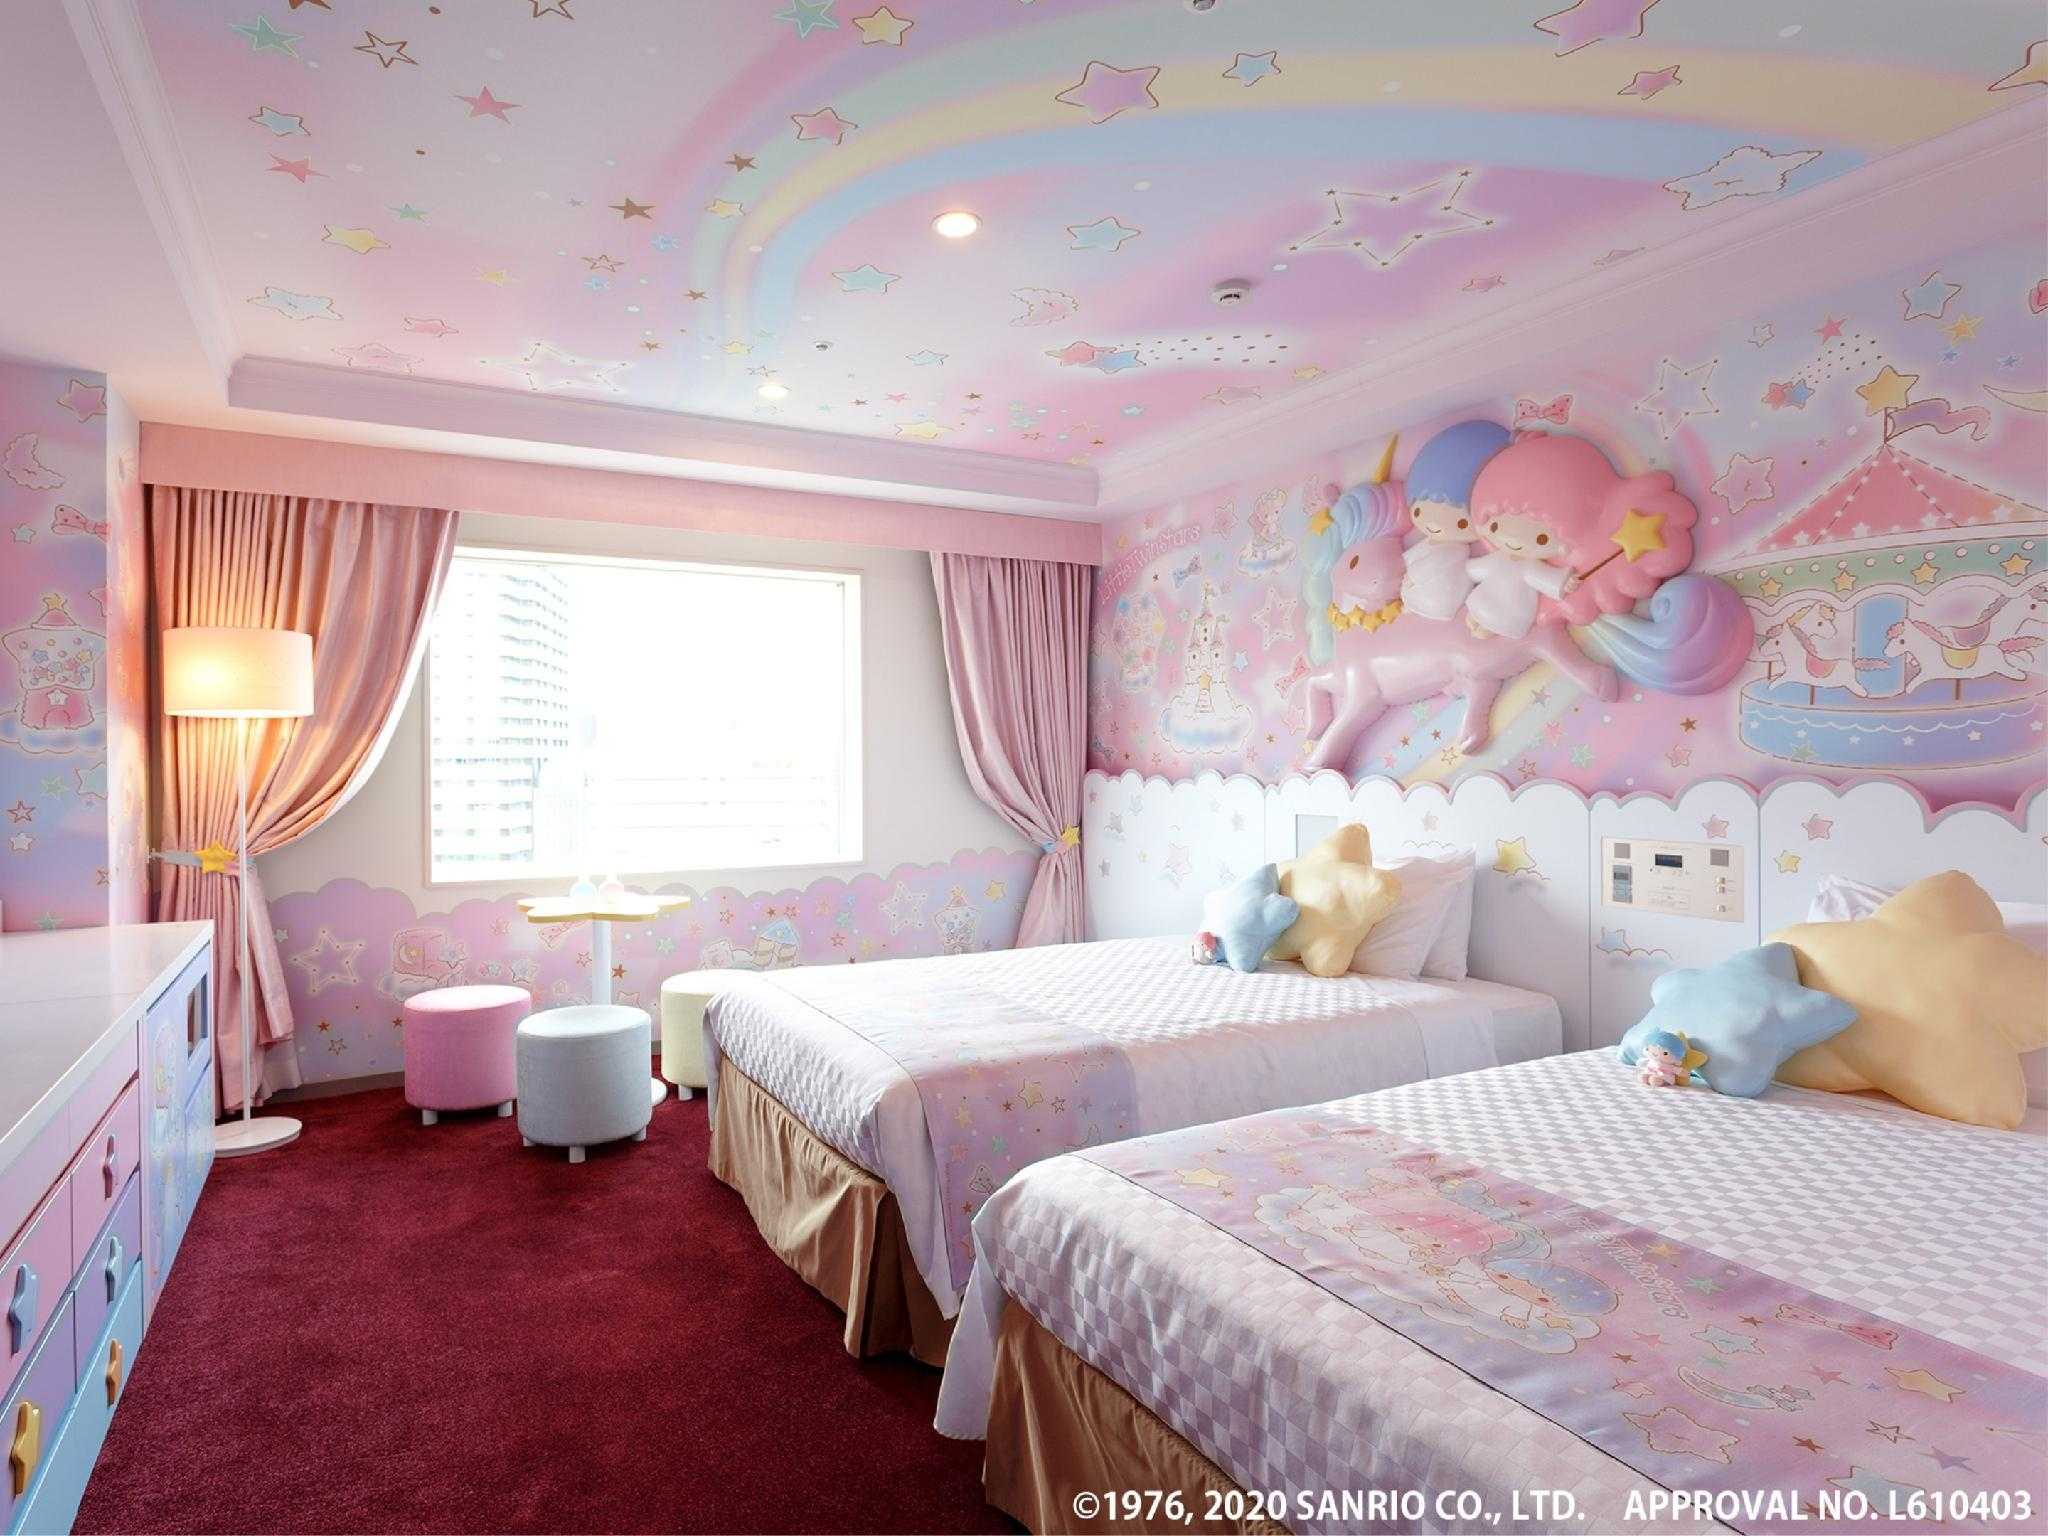 Little Twin Stars客房 (Little Twin Stars Room)